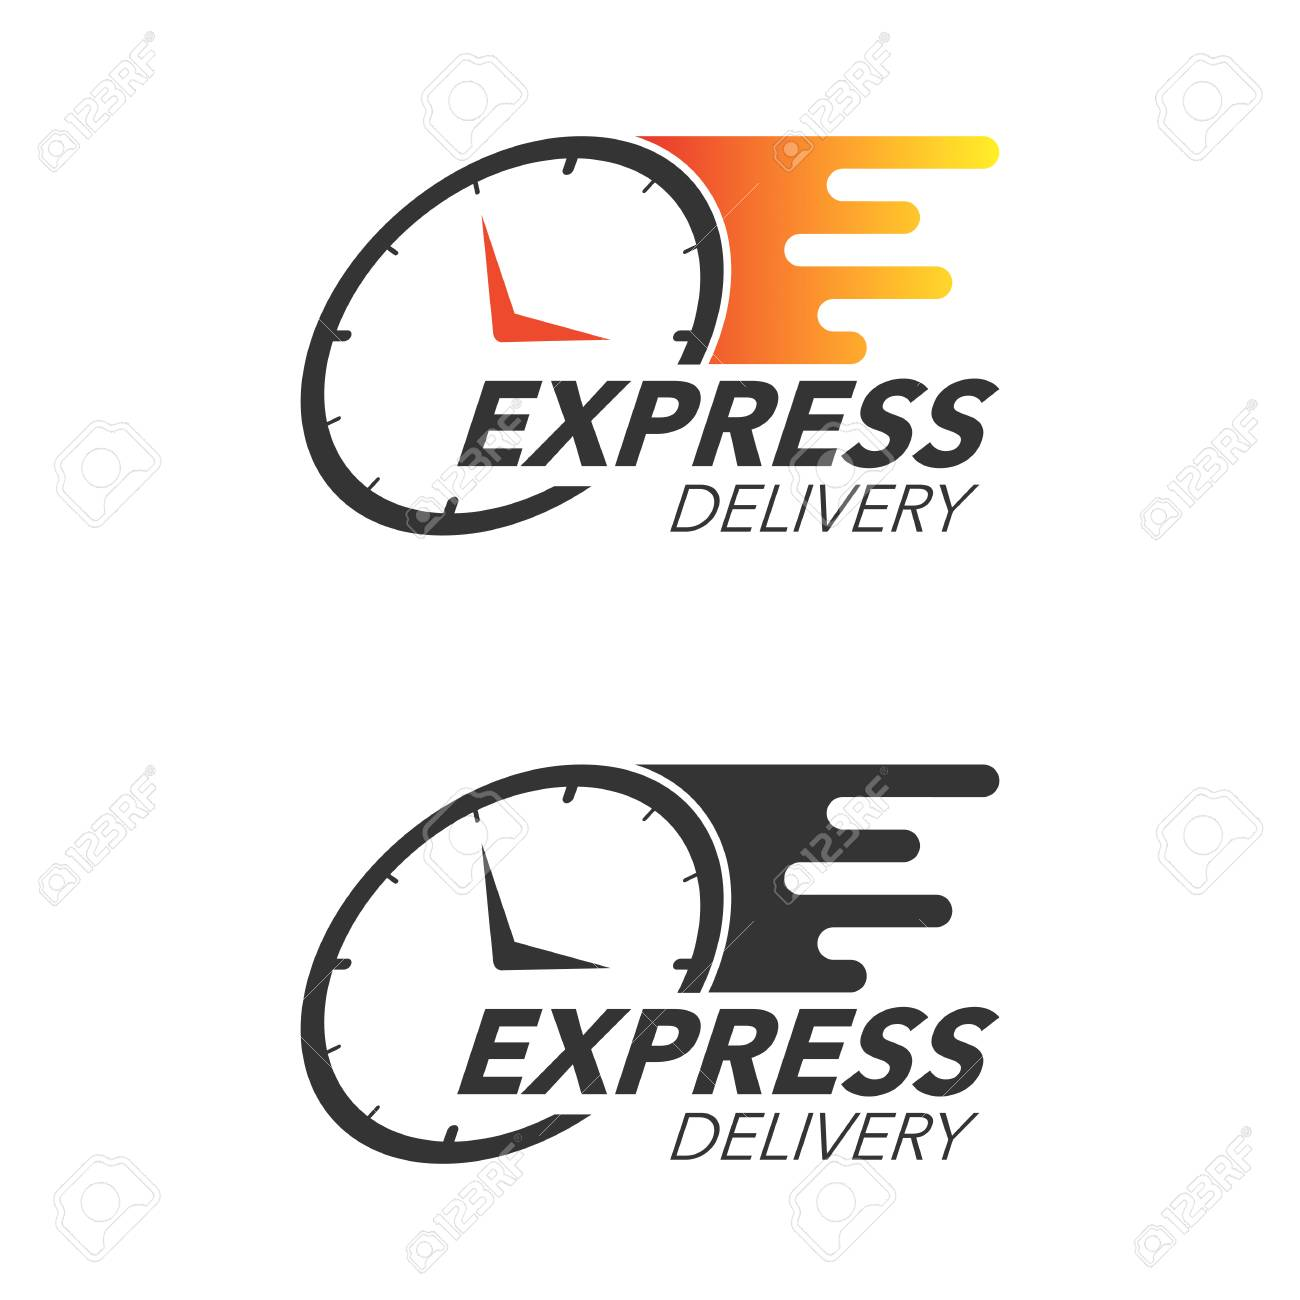 Express delivery icon concept. Watch icon for service, order, fast and free shipping. Modern design vector illustration. - 86190727